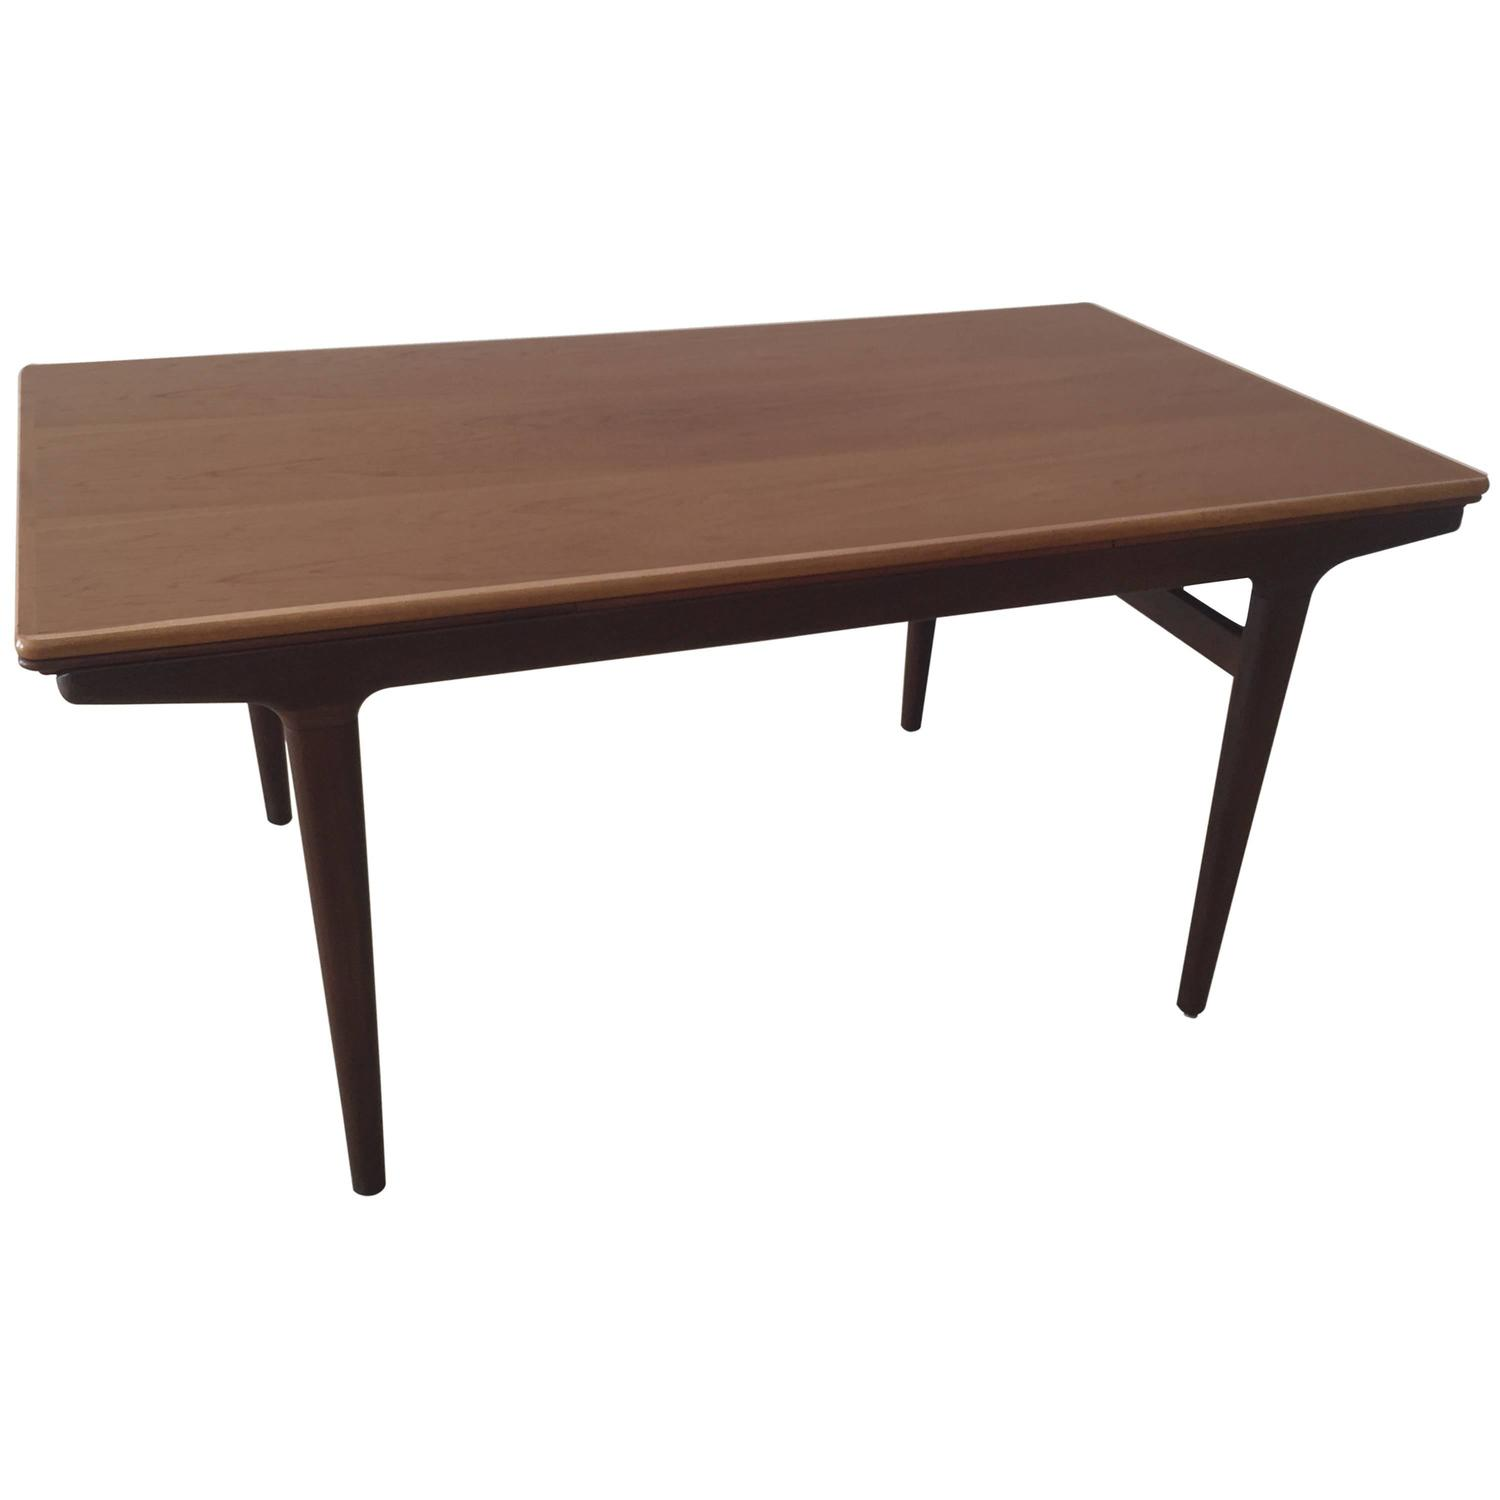 Teak Expanding Dining Table By Johannes Andersen For Uldum